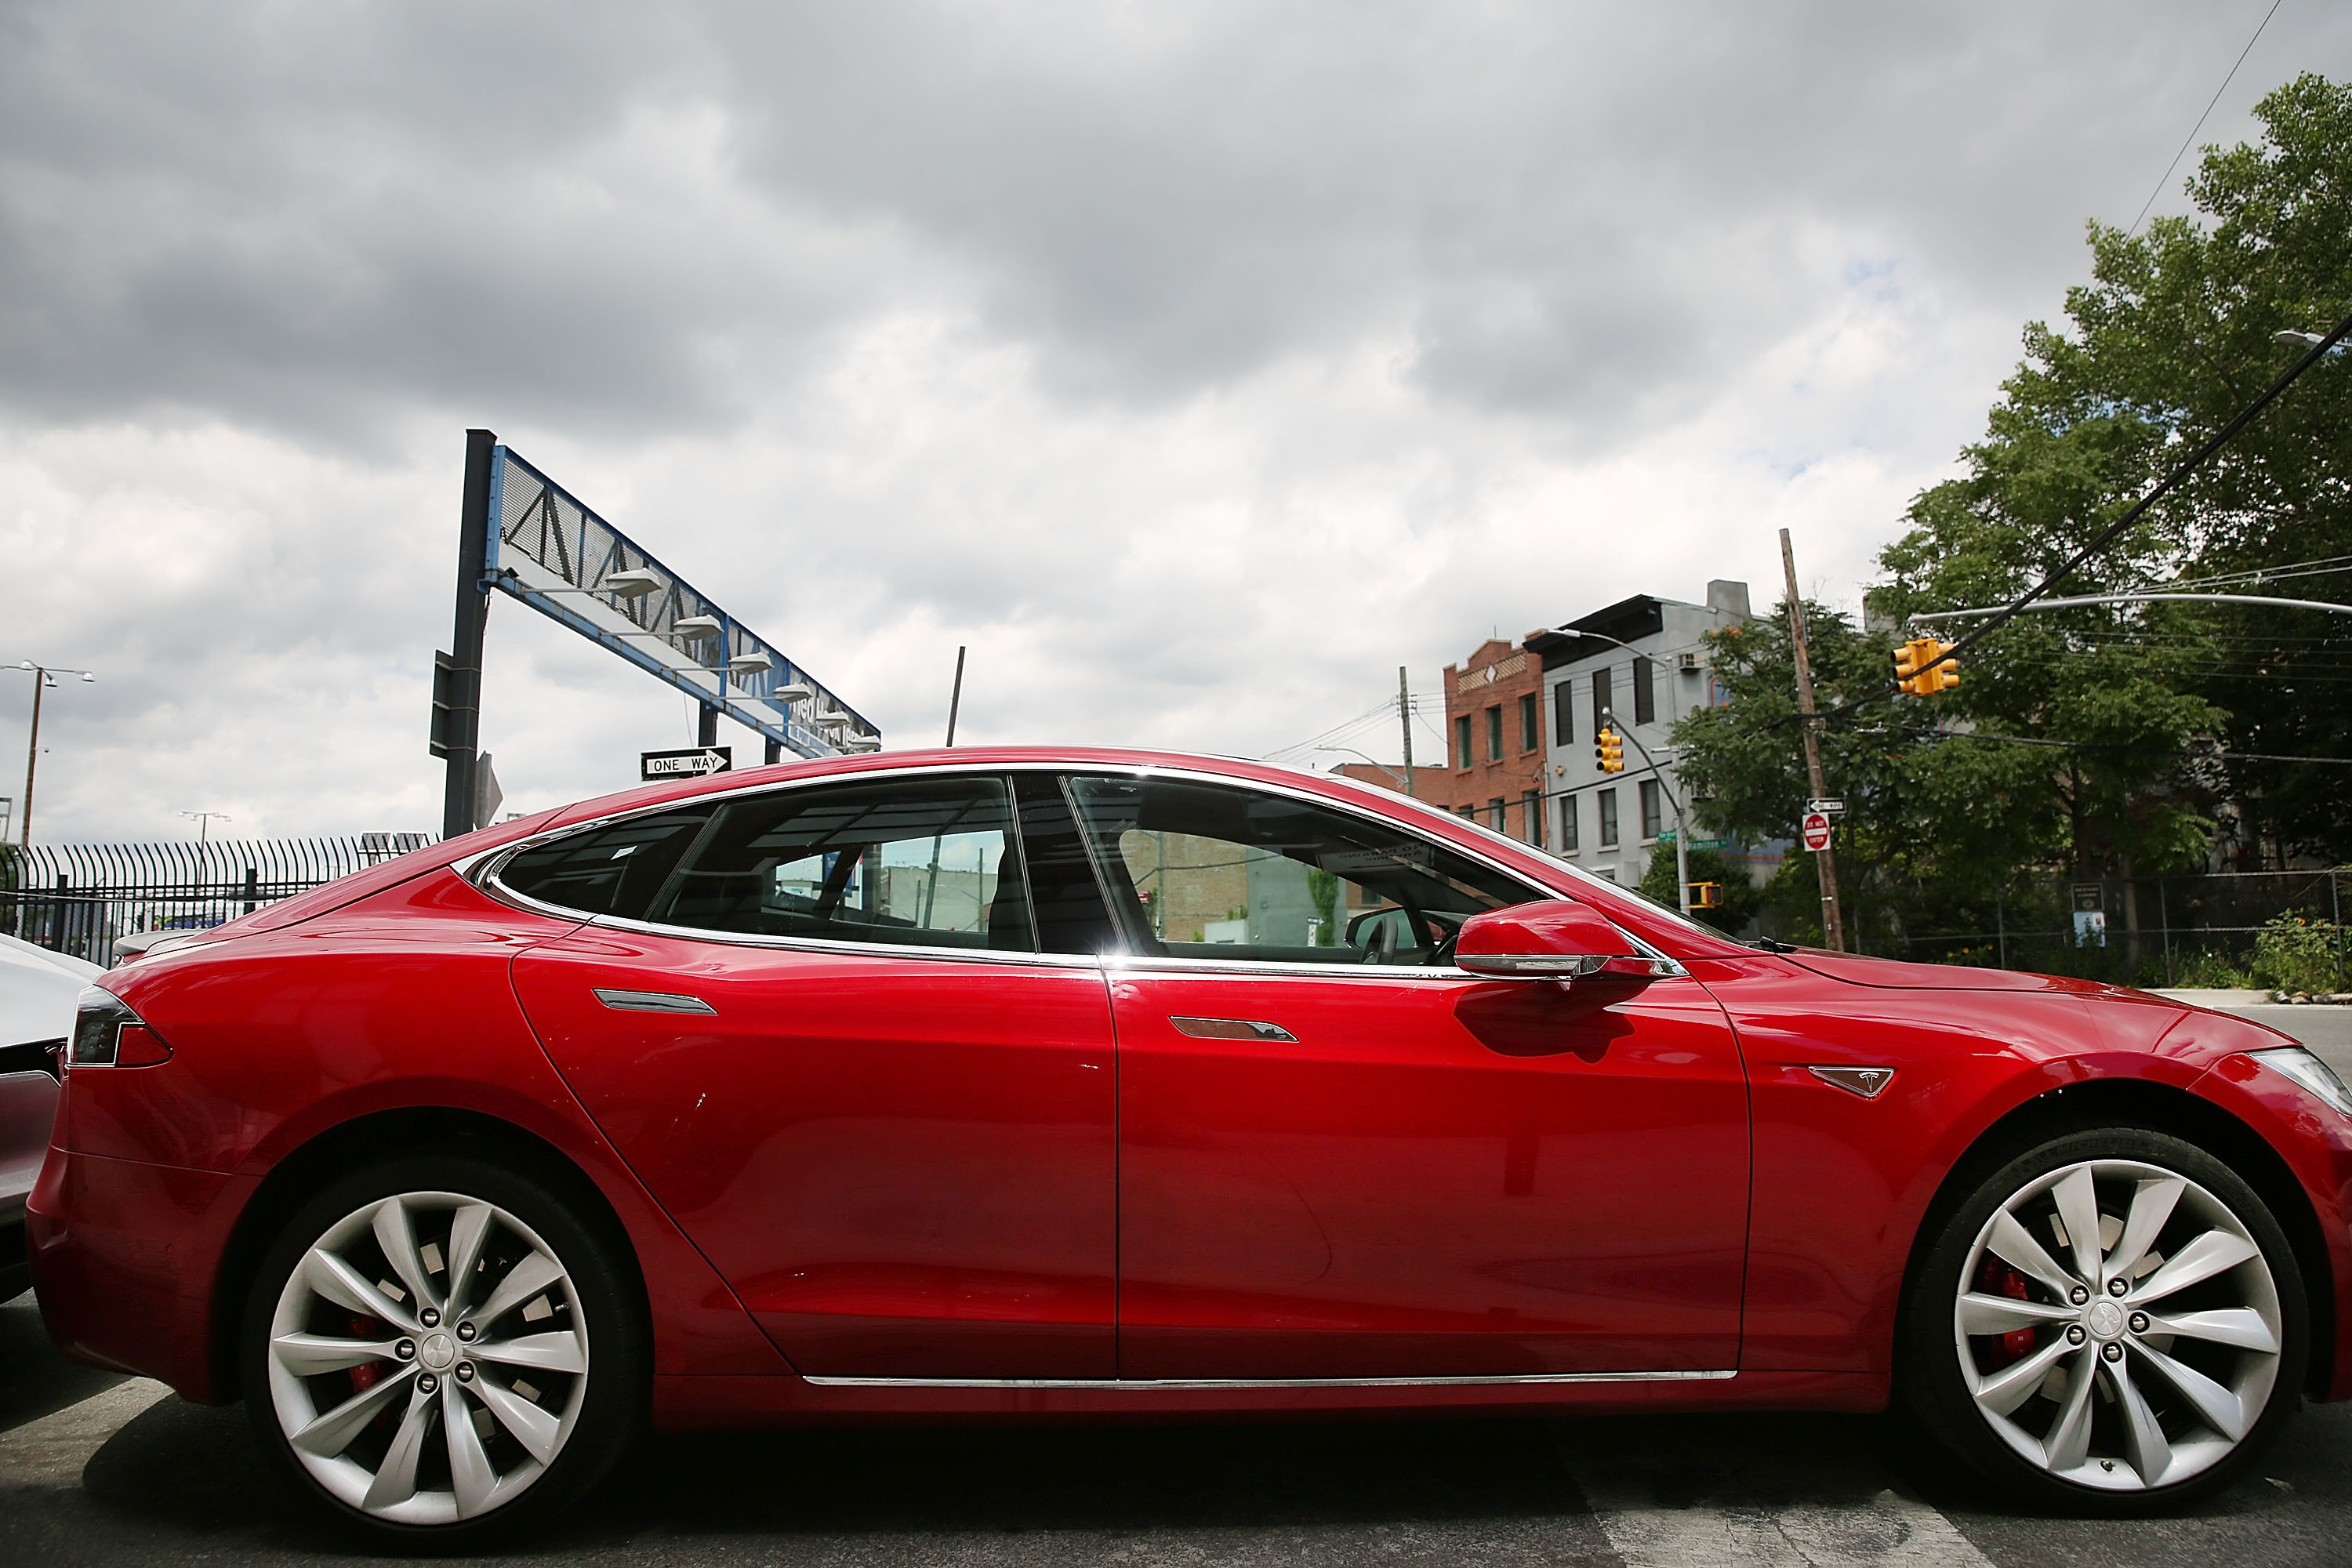 Tesla Increases Leasing 74% YoY, Details Insurance Plan